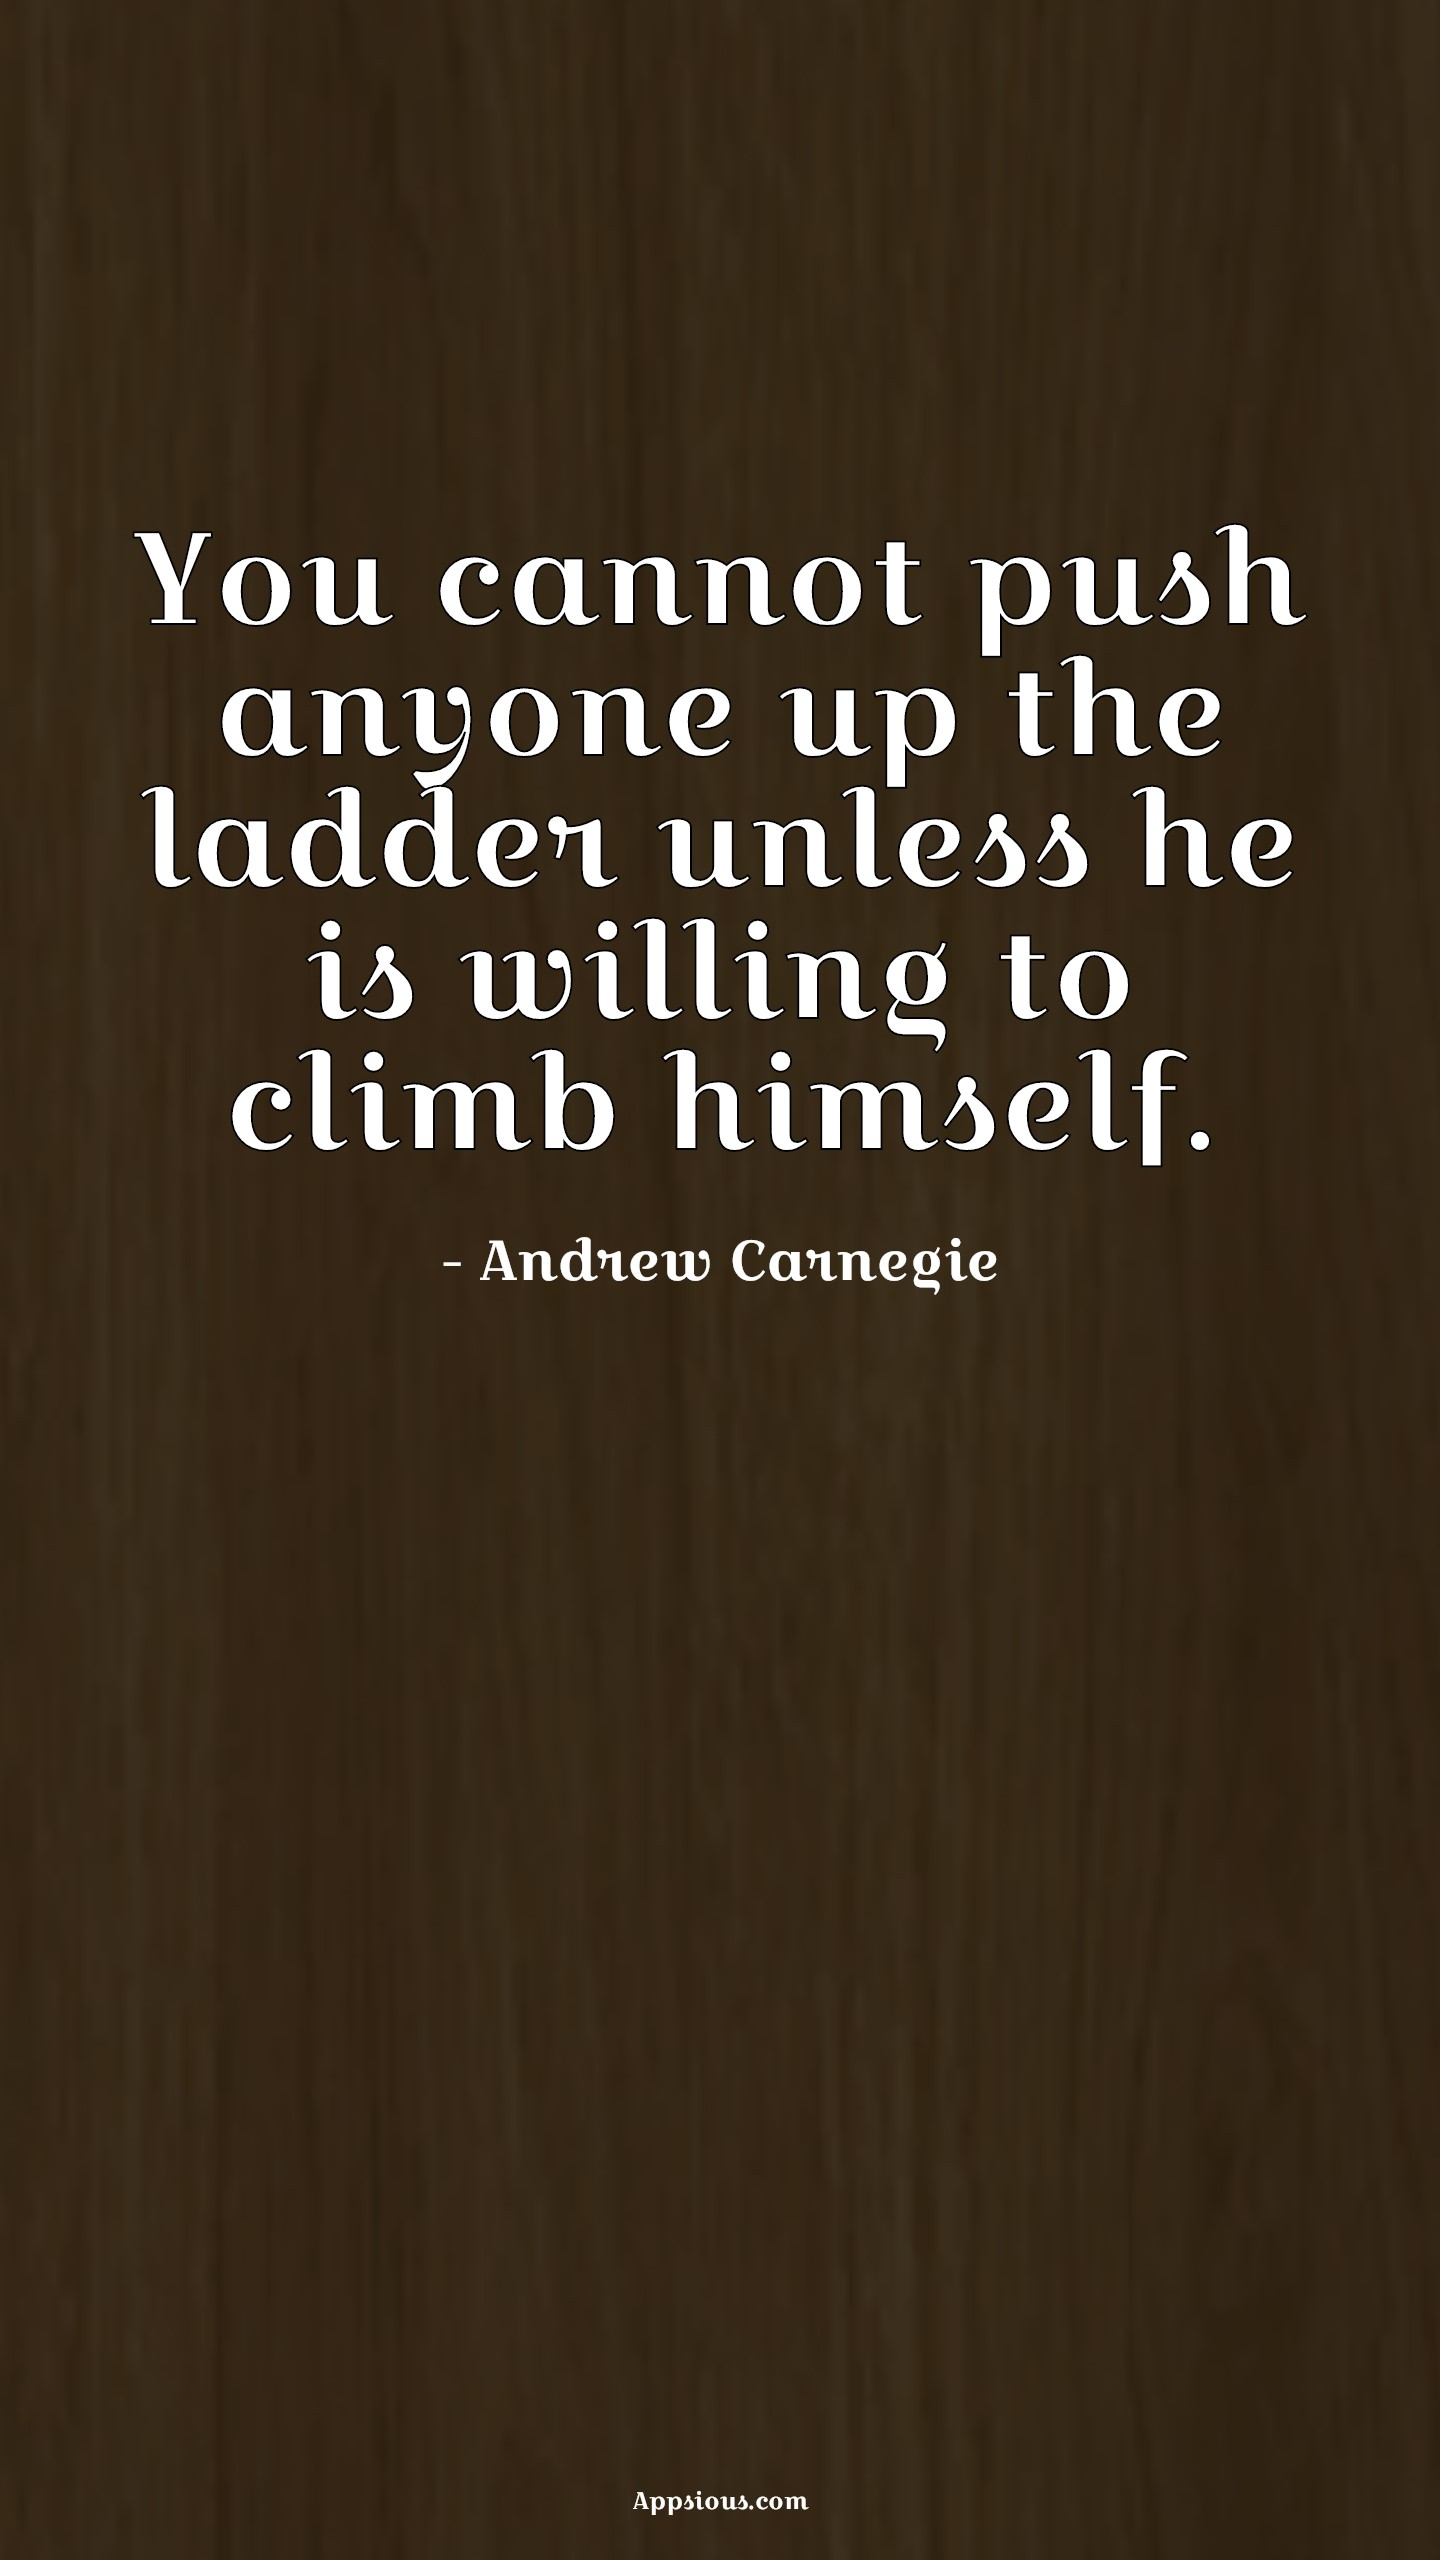 You cannot push anyone up the ladder unless he is willing to climb himself.